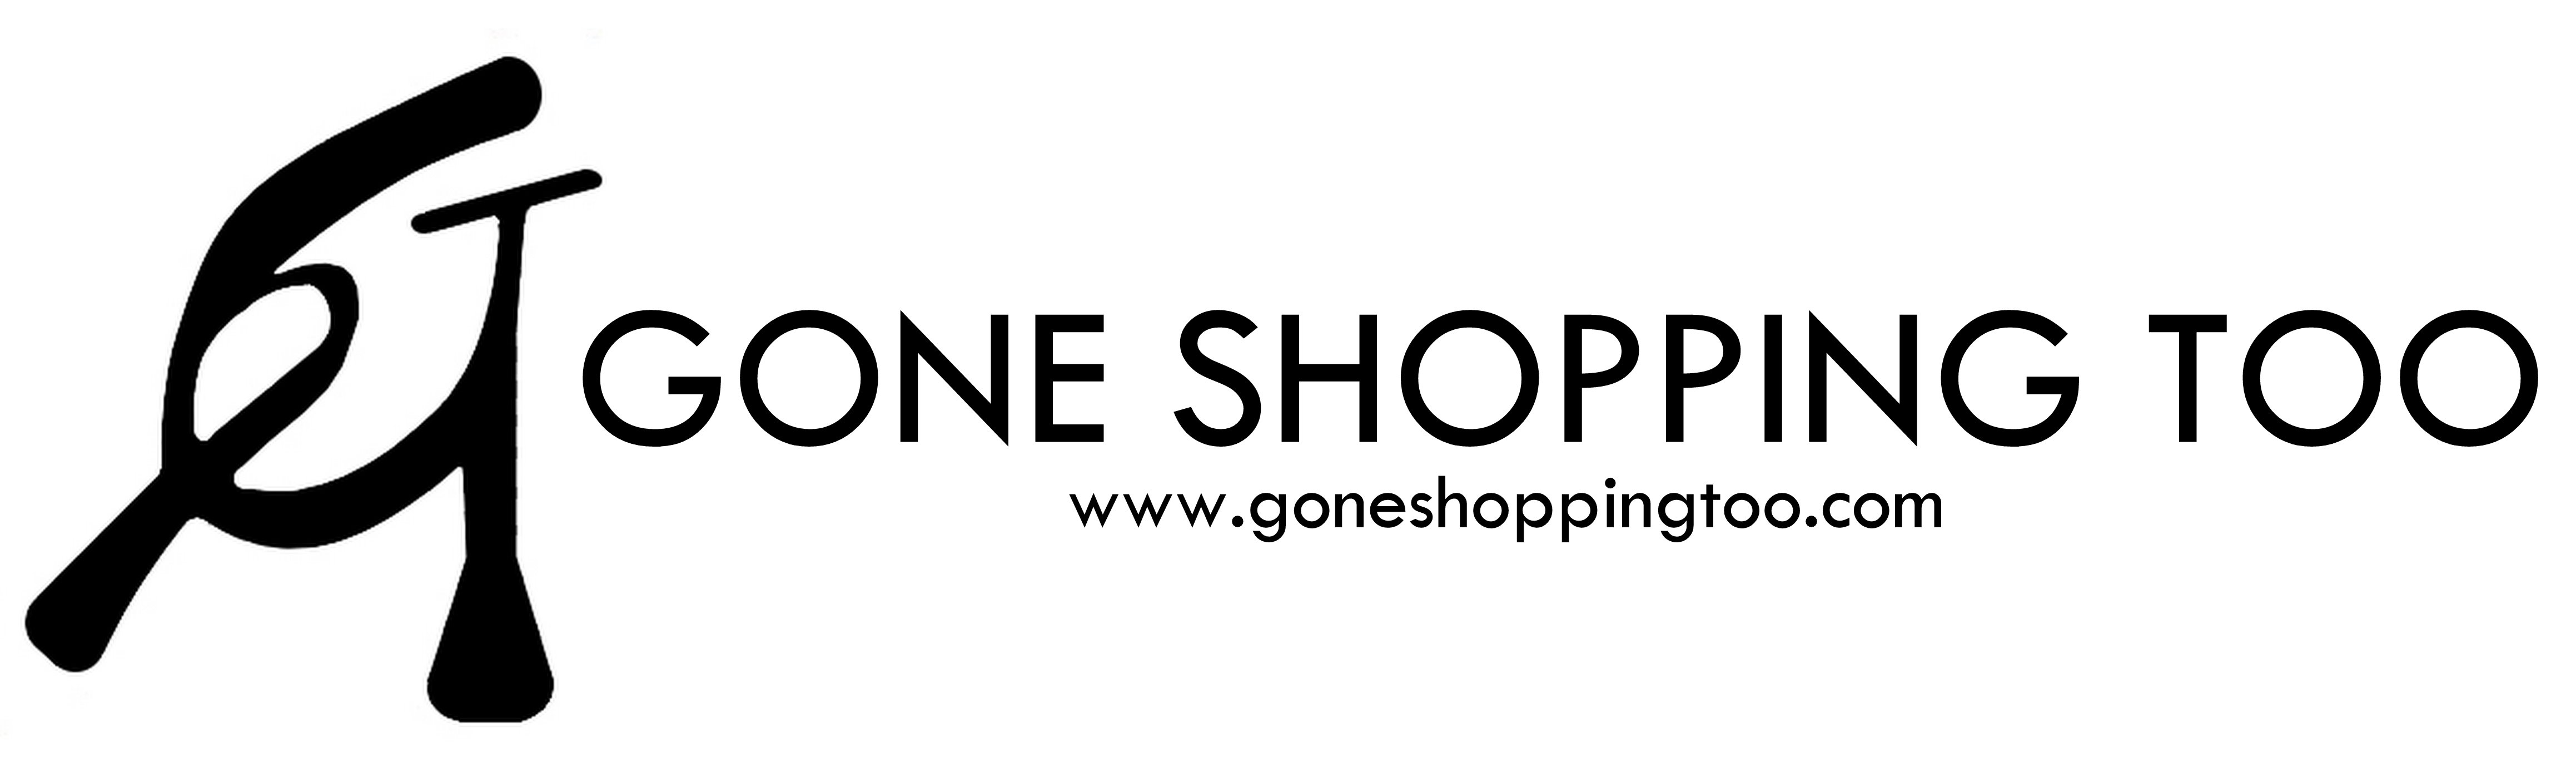 Allerines Premium Tea featured on Gone Shopping Too